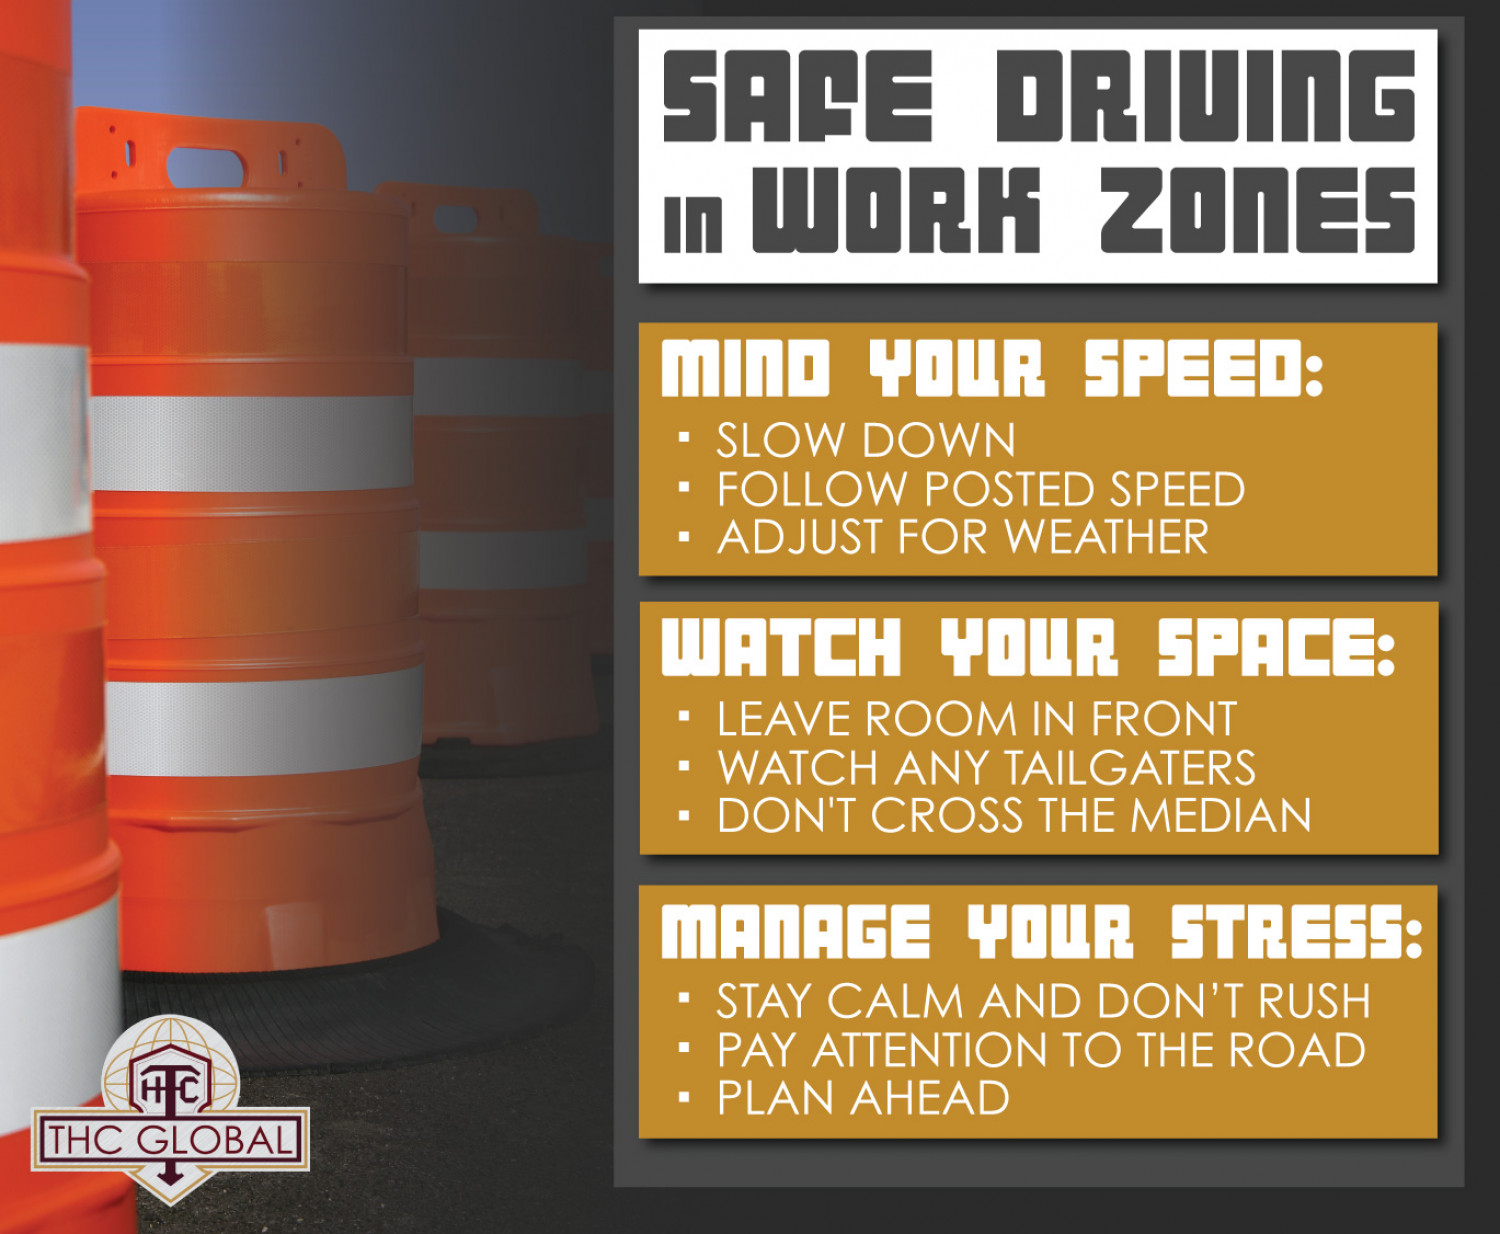 Safe Driving in Work Zones Infographic